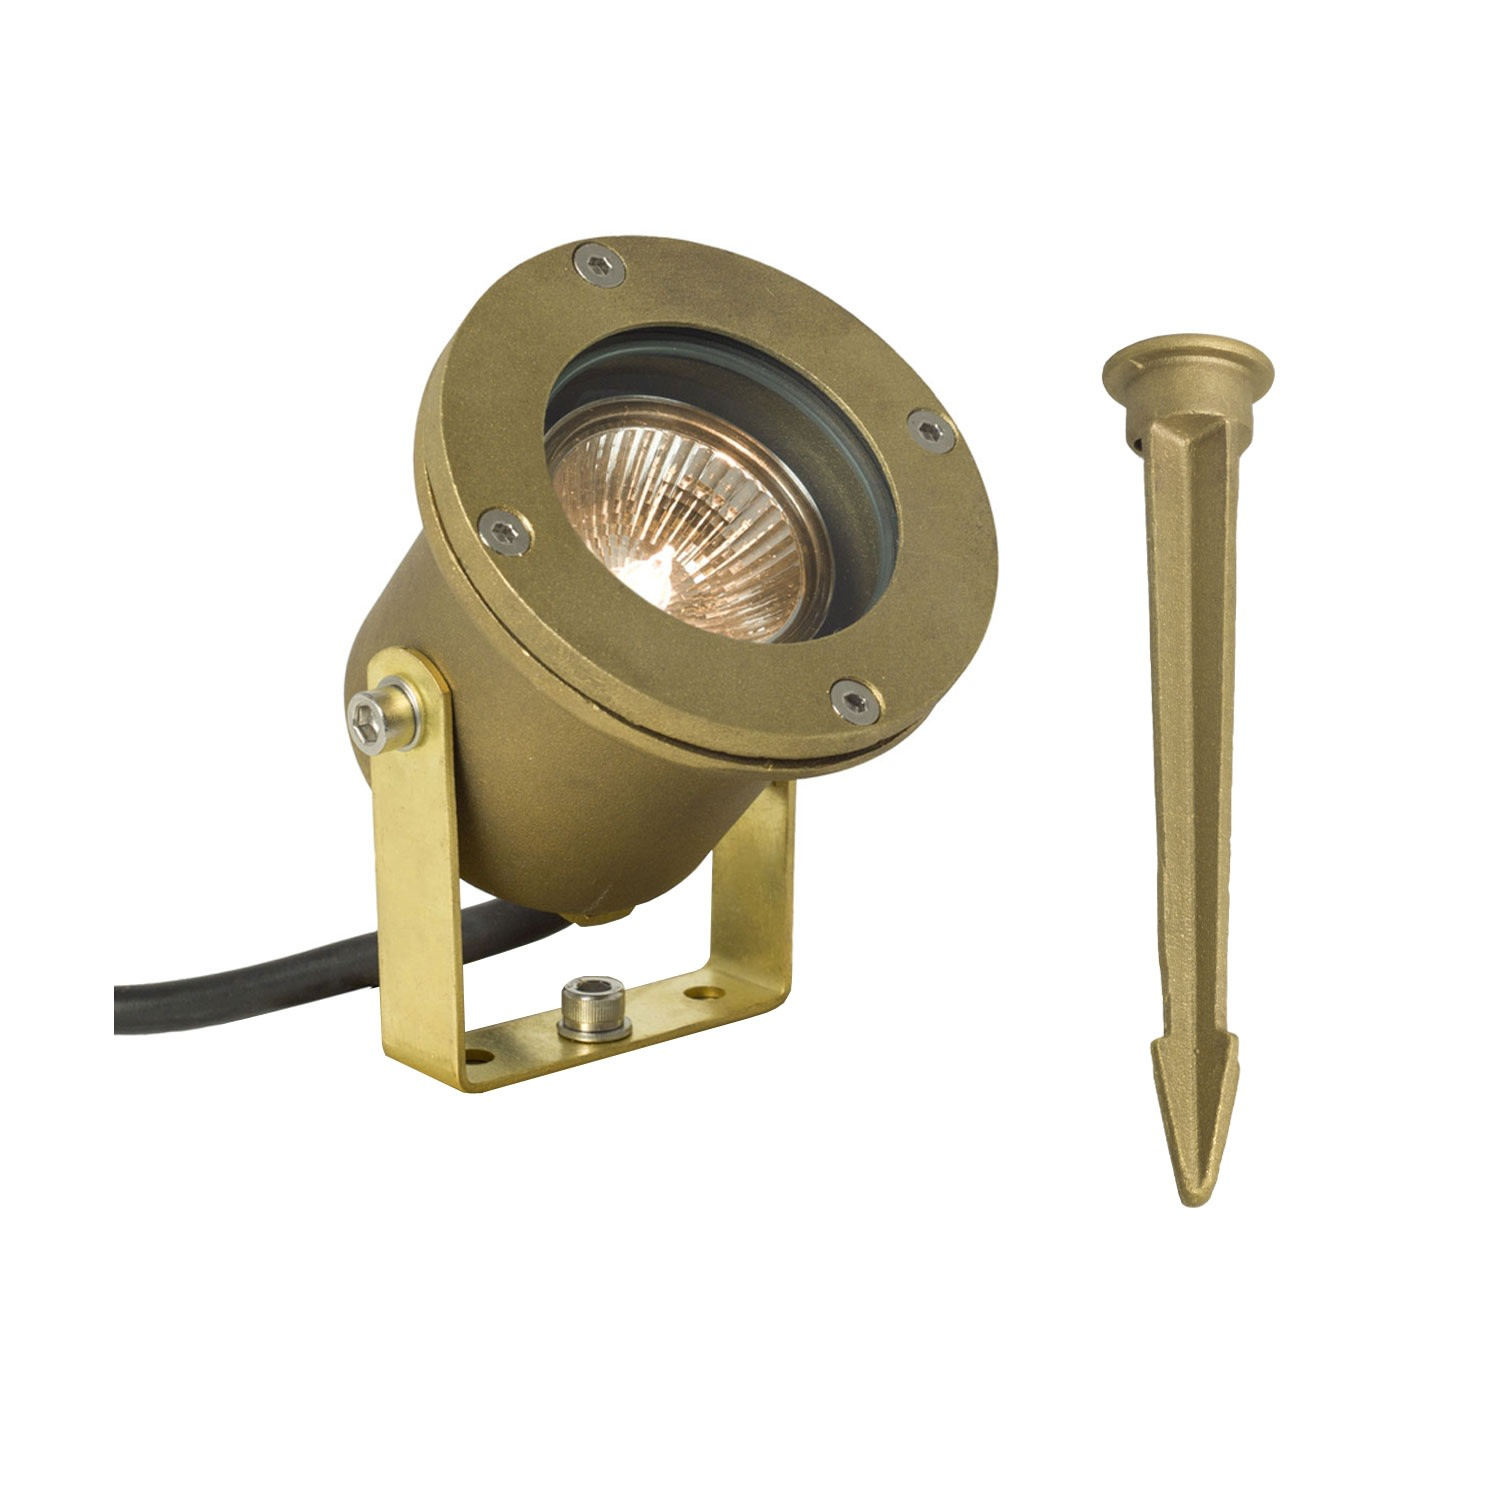 Spotlight for Submerged or Surface Use, Ground Spike, 7604 Brass